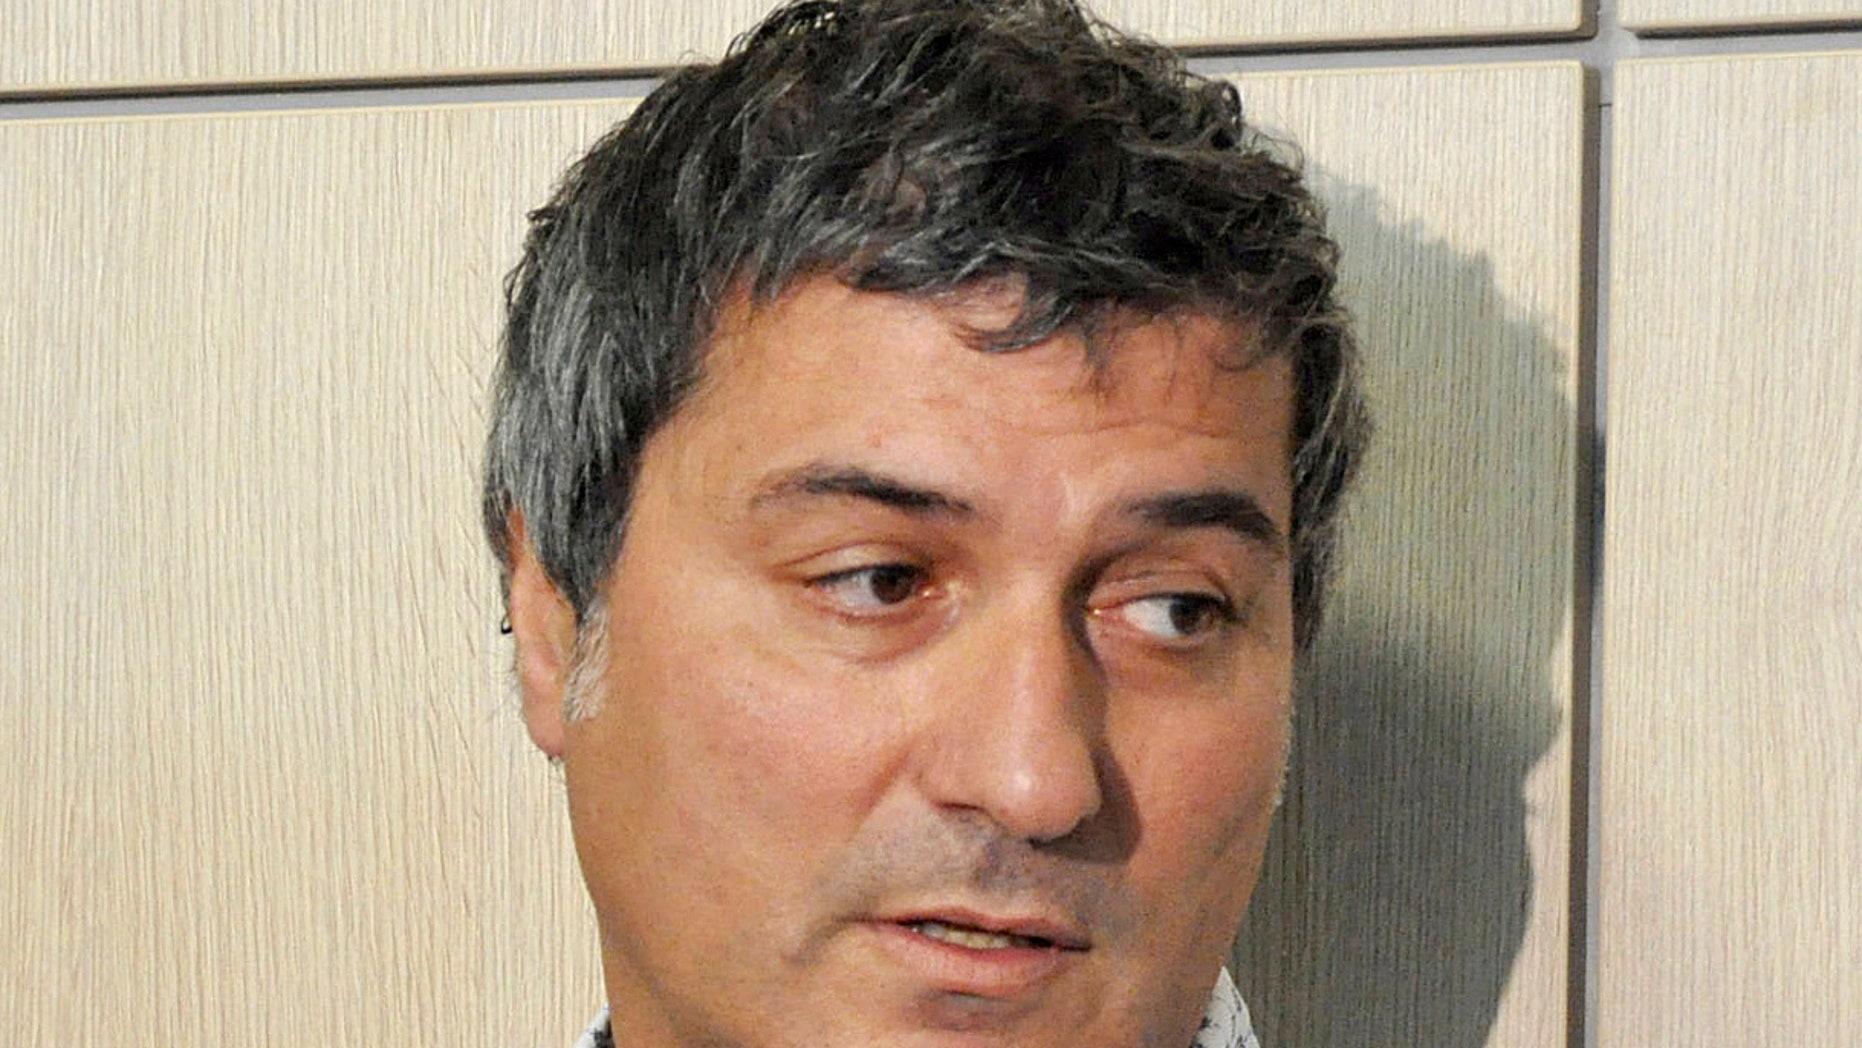 In this Friday, July 30, 2010 file photo, Dr. Paolo Macchiarini talks to journalists during a press conference, in Florence, Italy.